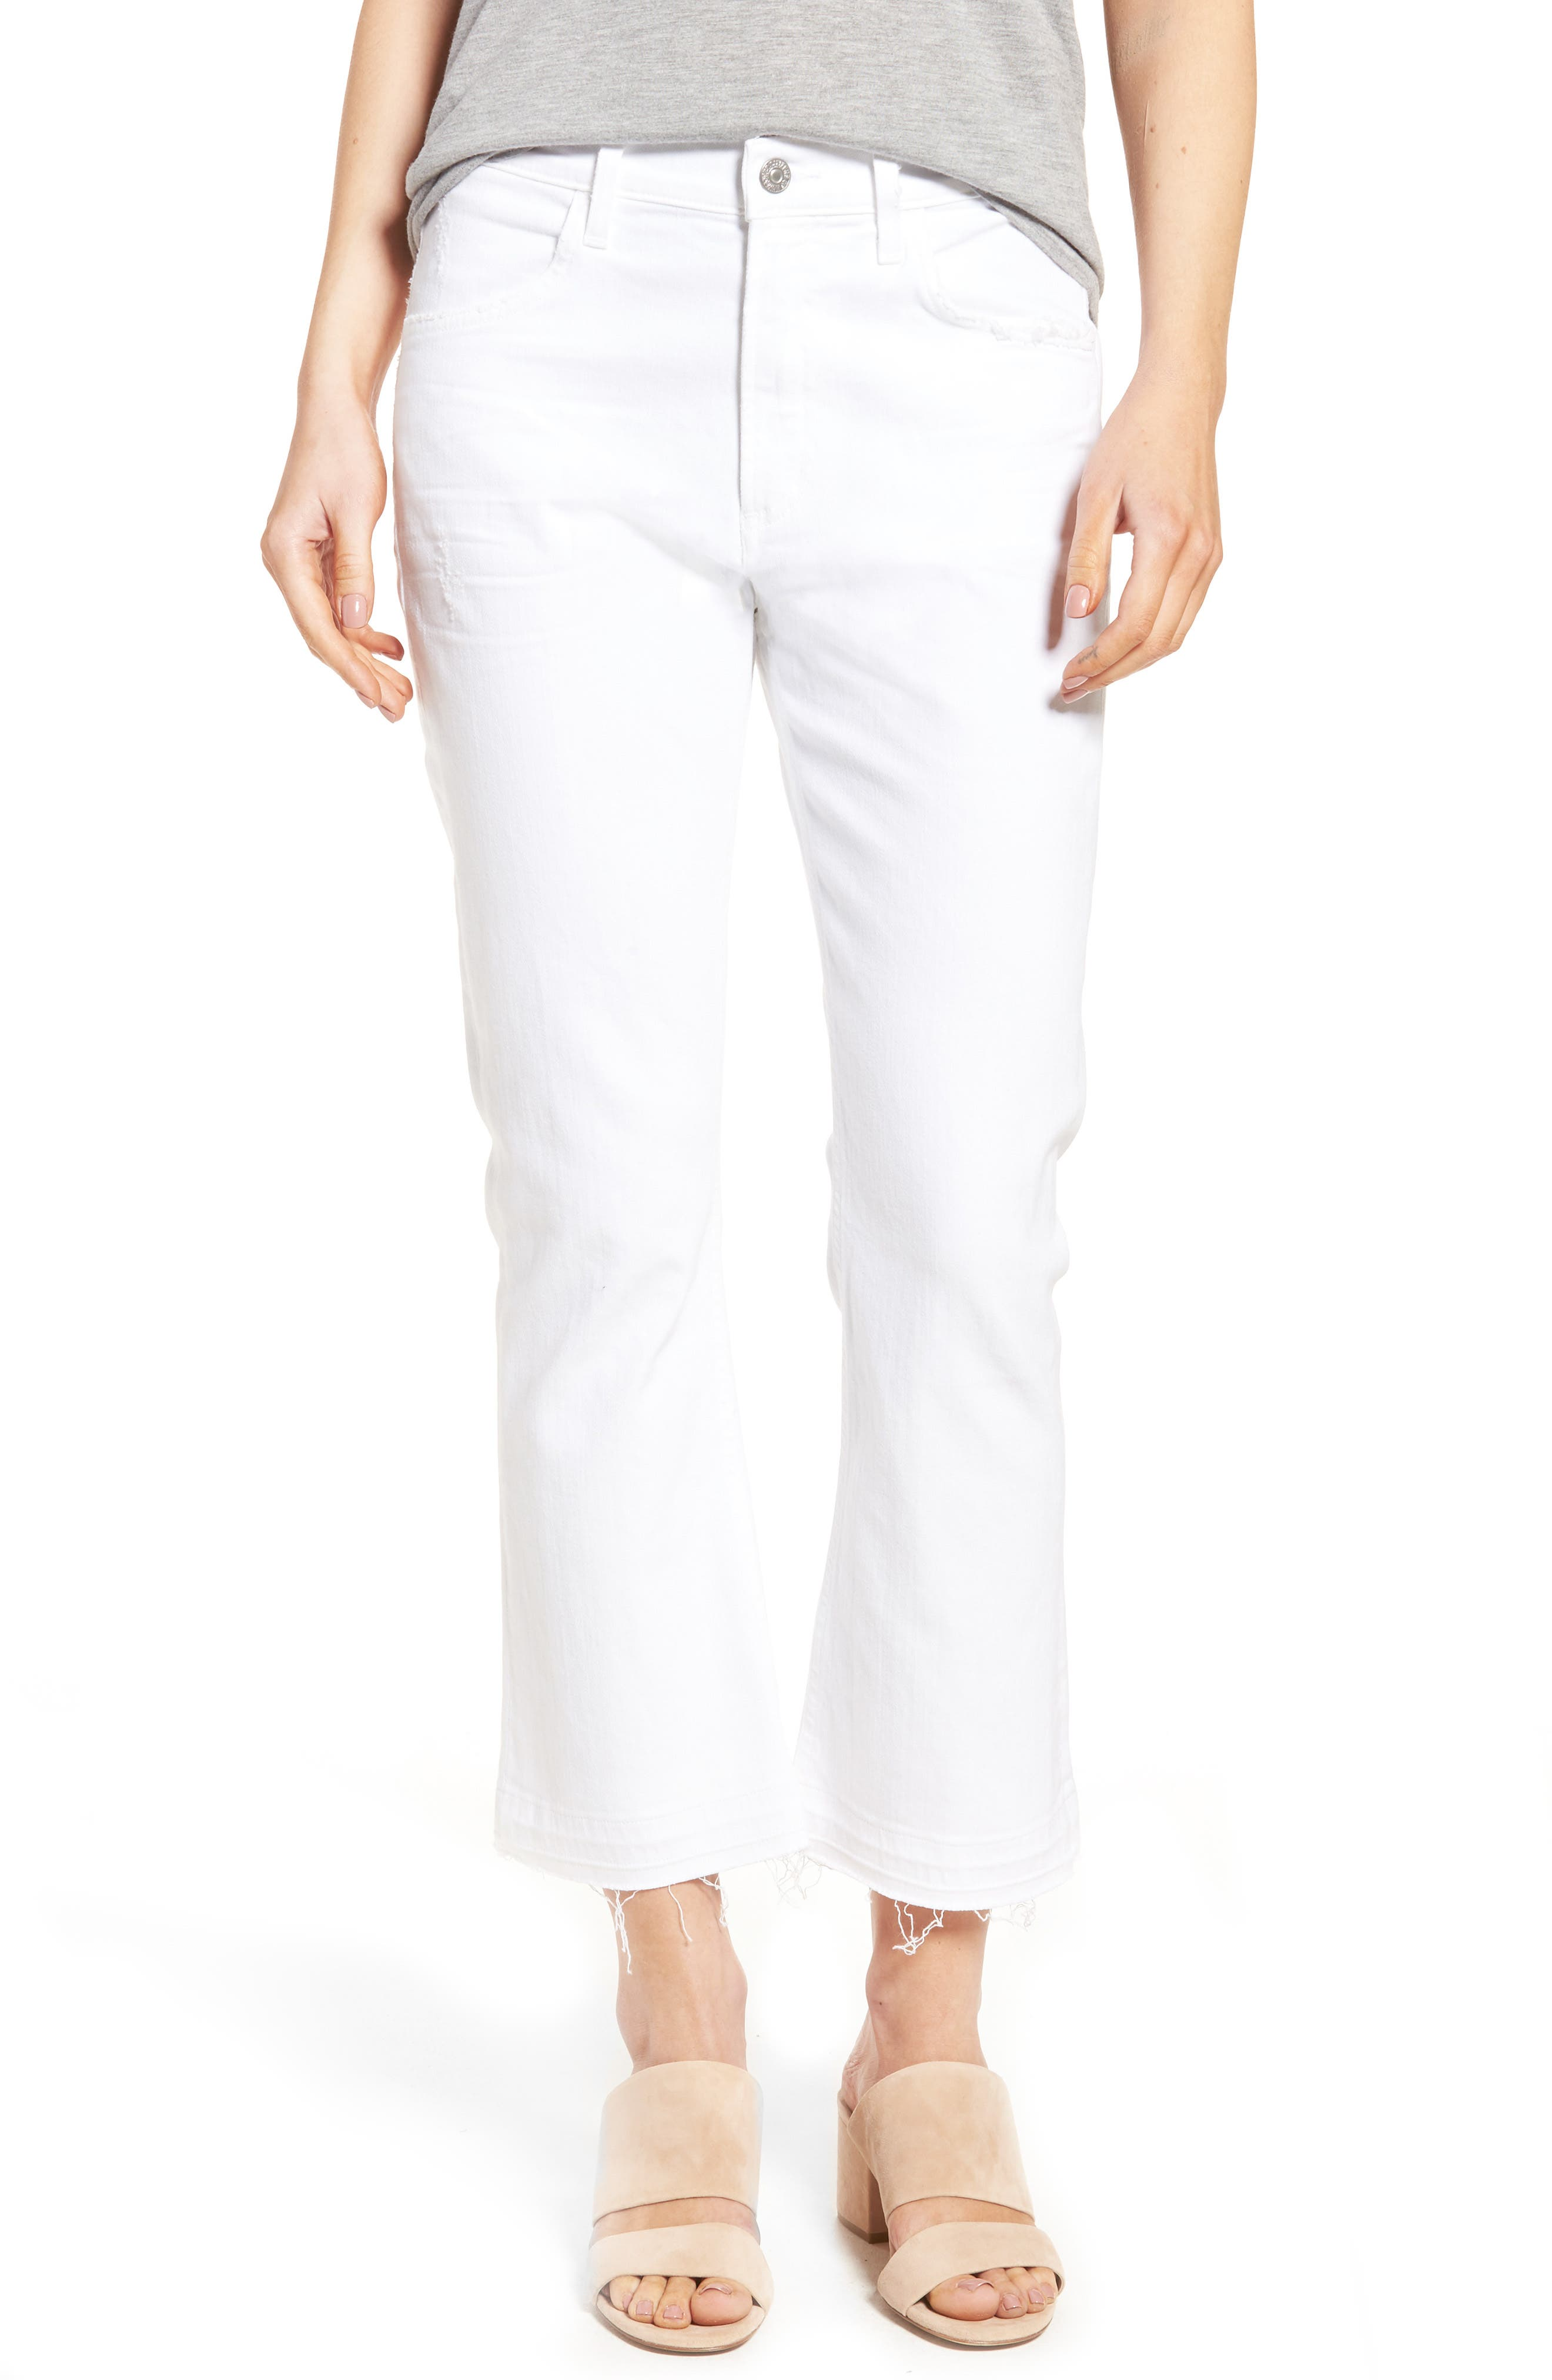 CITIZENS OF HUMANITY Drew Crop Flare Jeans, Main, color, DISTRESSED WHITE